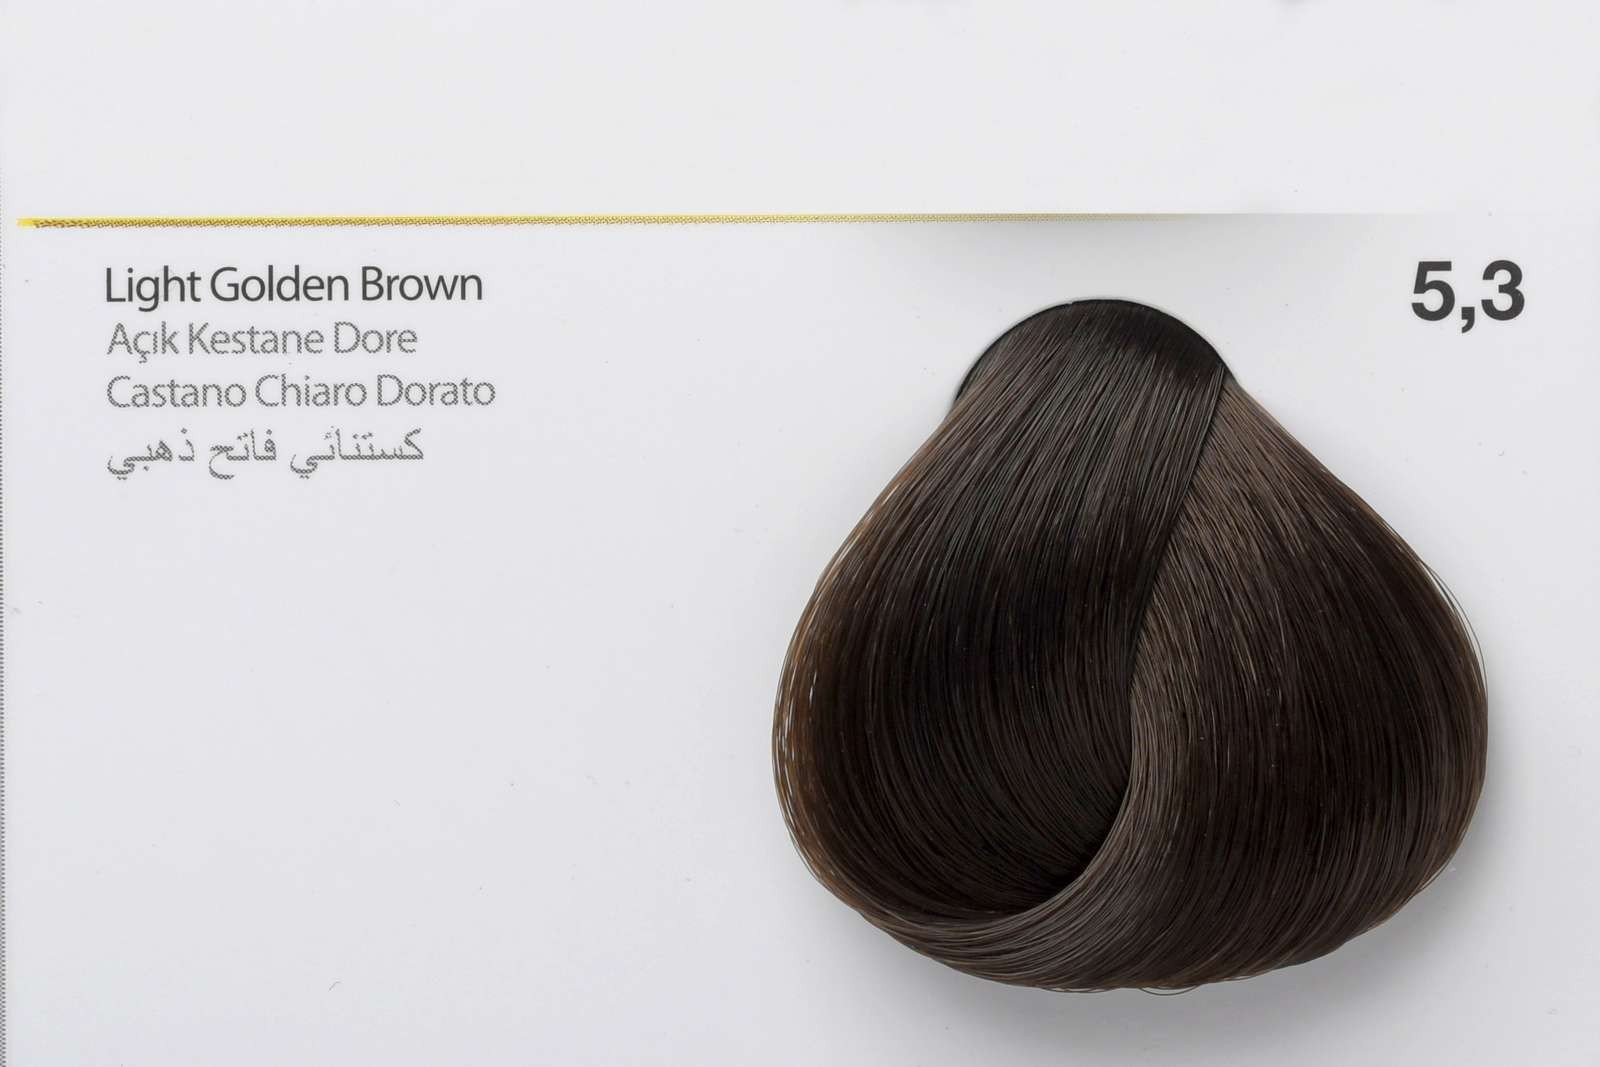 5,3 - Light Golden Brown